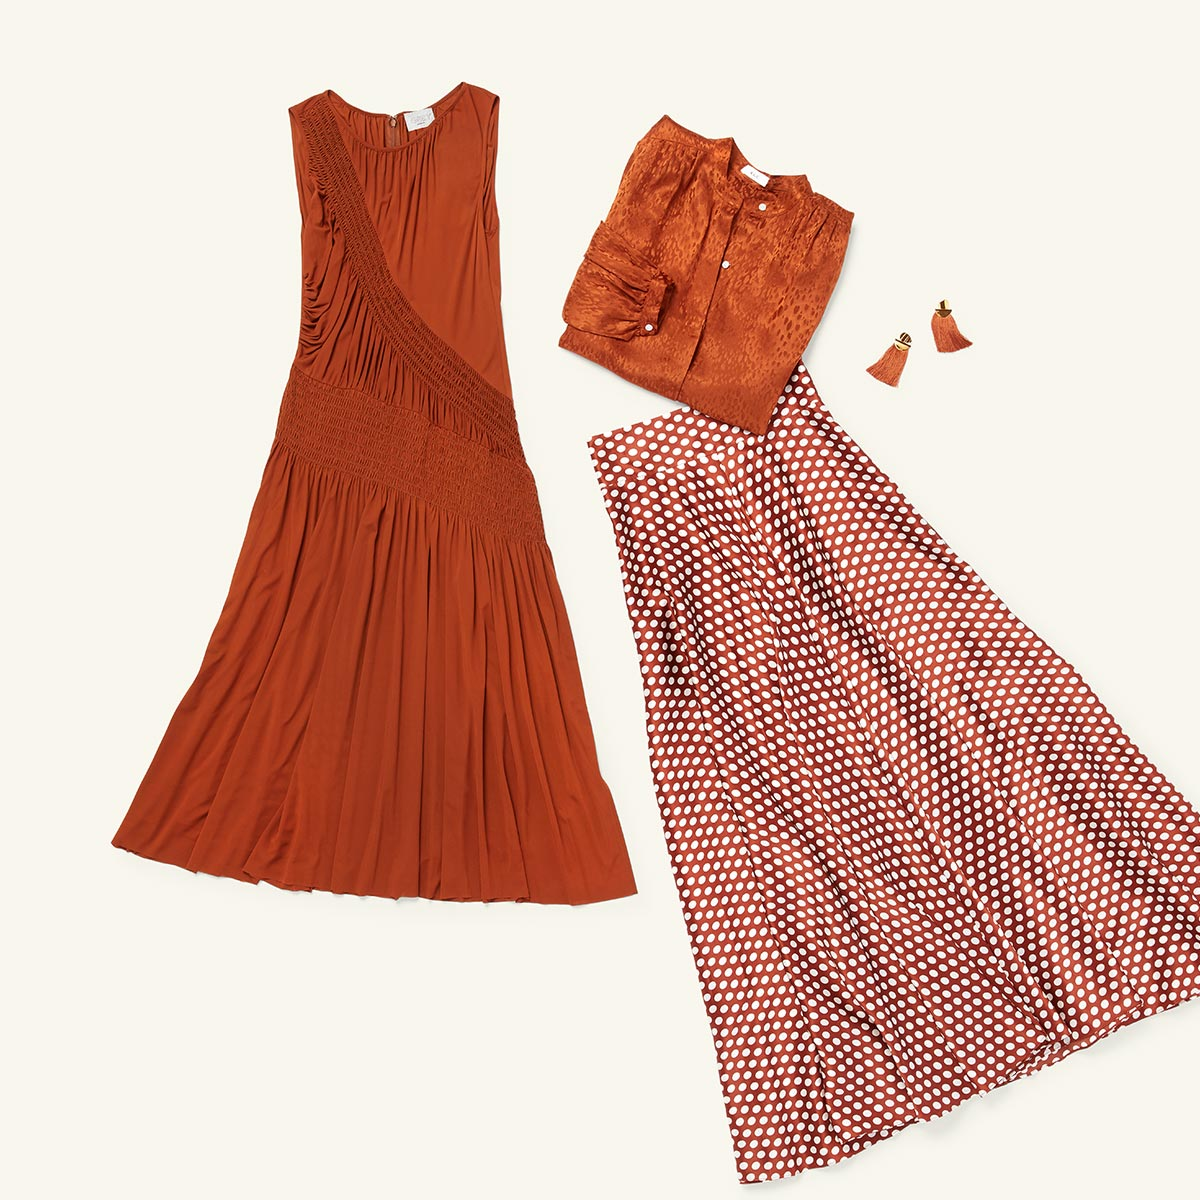 Four items of women's fashion - a pair of fringed earrings, a silk blouse, a flowing dress and a pleated skirt - laid flat on a white background.